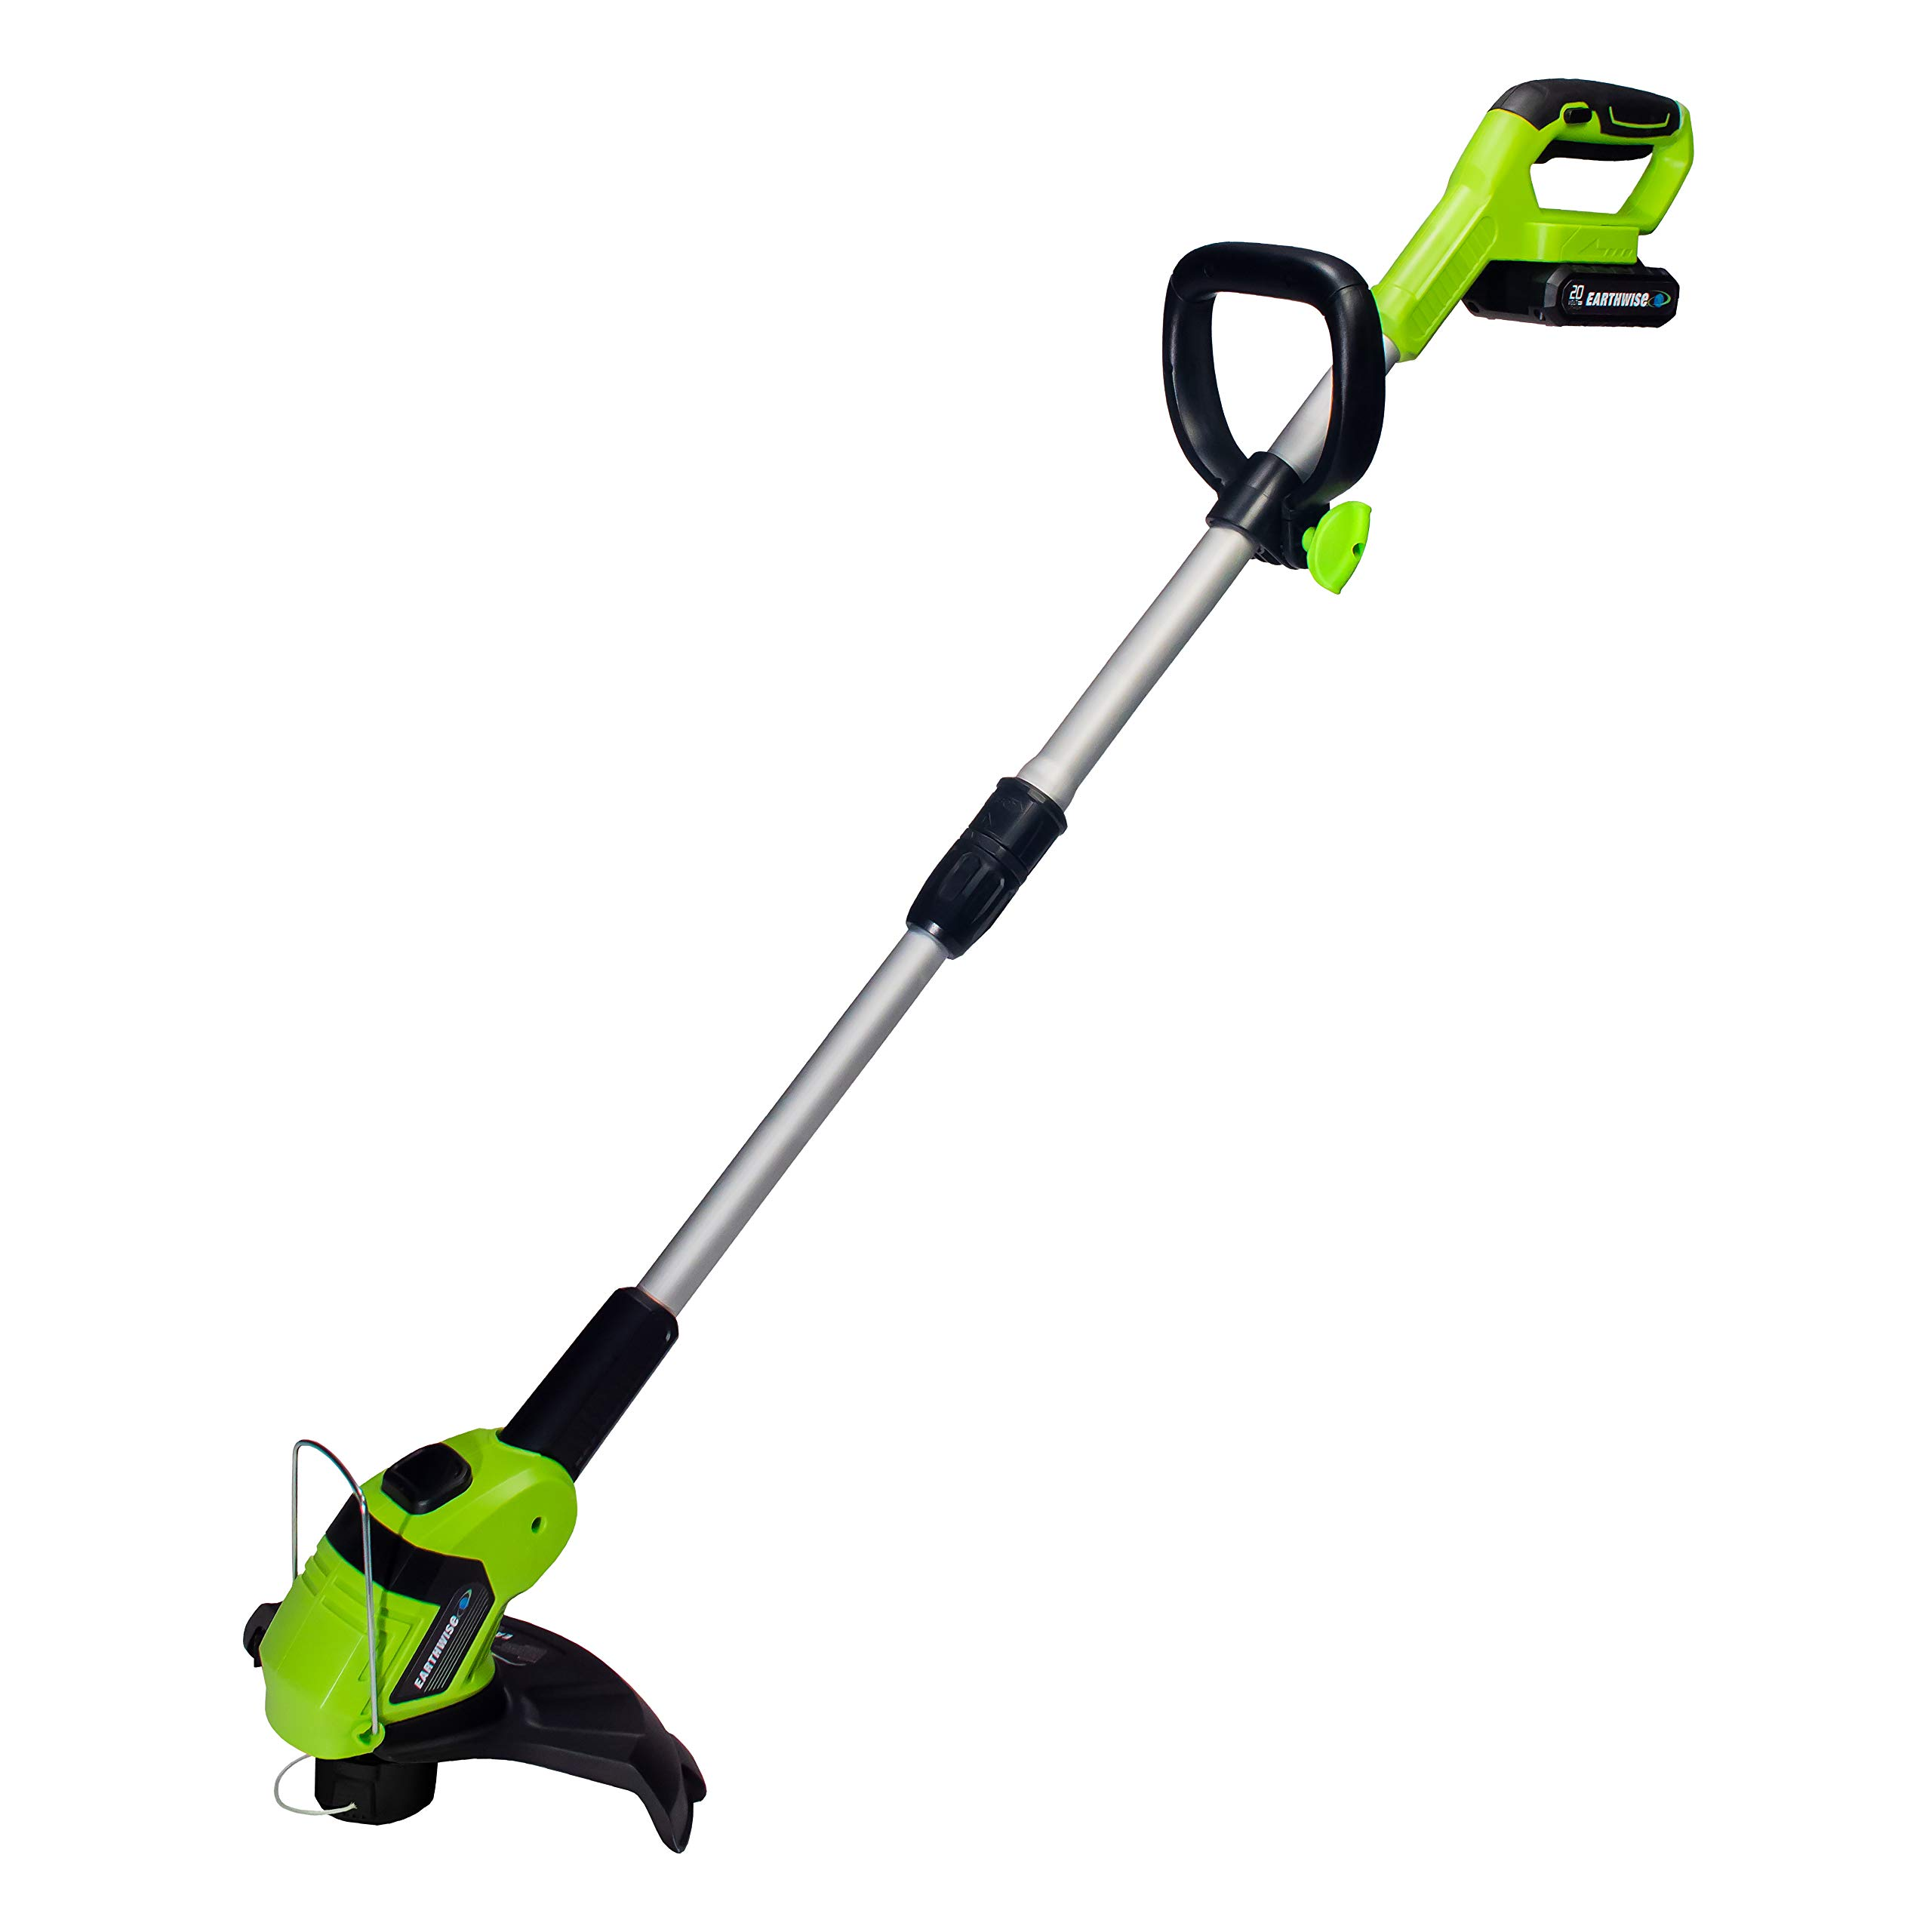 Earthwise LST02010 20-Volt 10-Inch Cordless String Trimmer, 2.0Ah Battery & Fast Charger Included by Earthwise